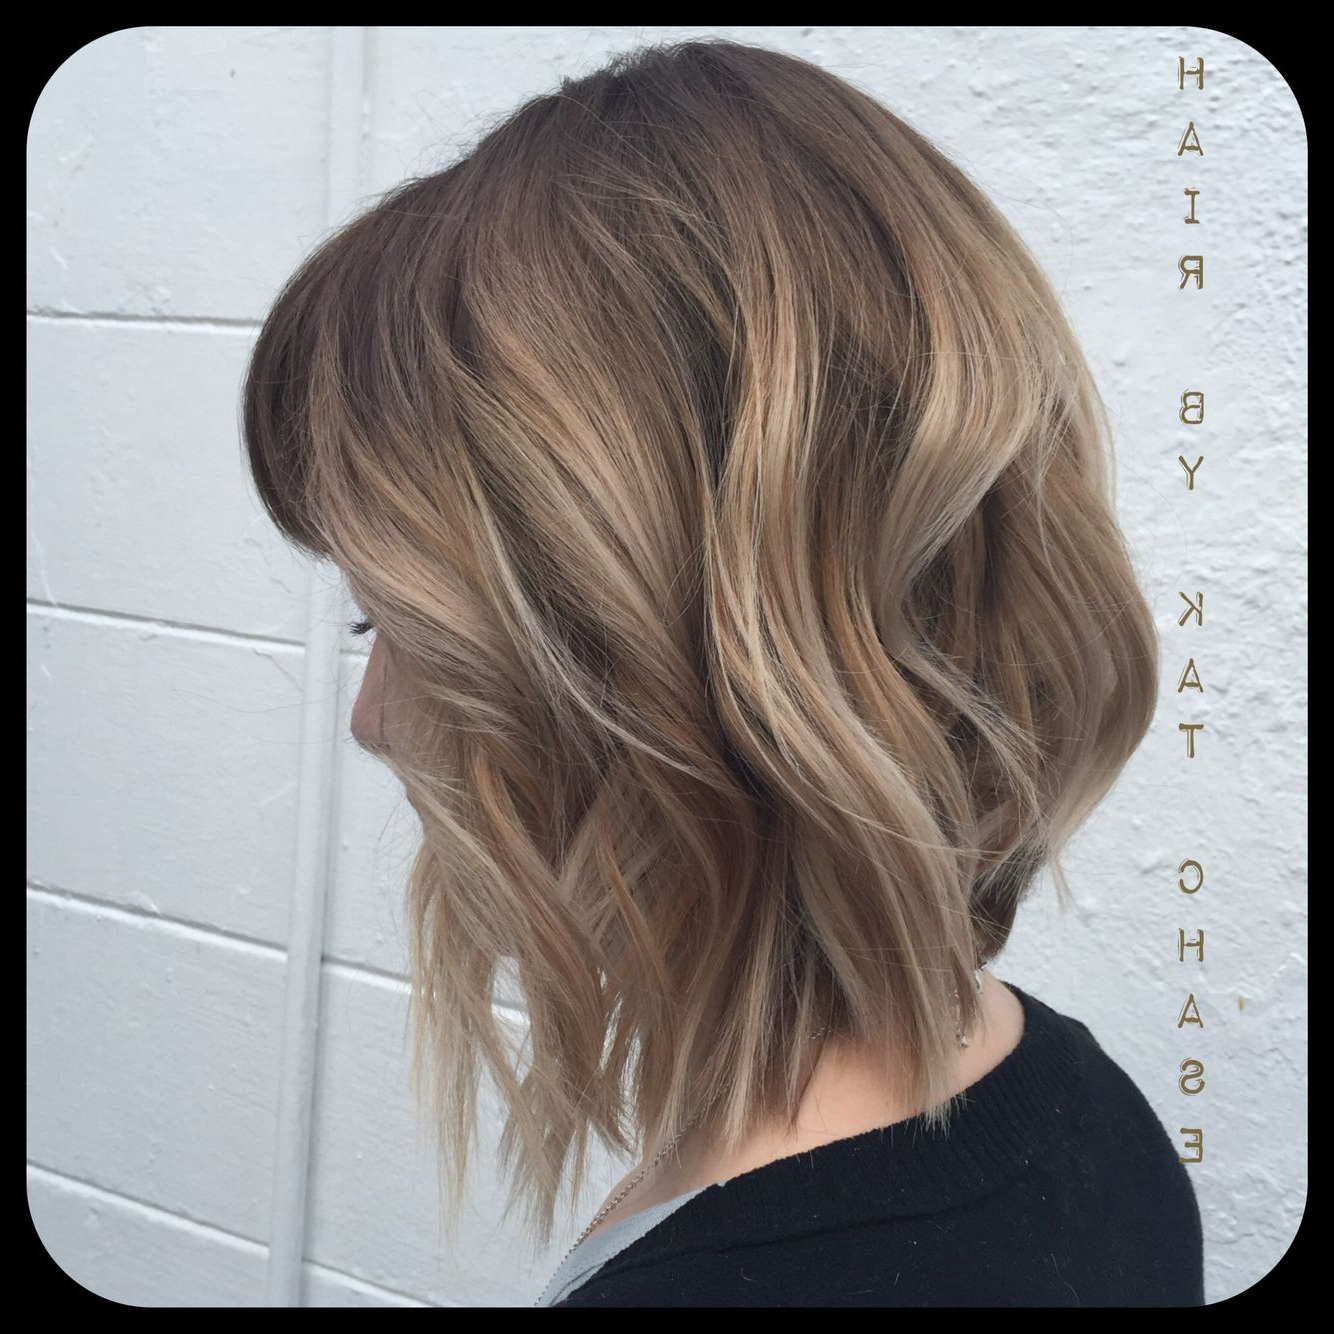 Ash Blonde Ombre On Short Hair | Awwwwsum Hair In 2018 | Pinterest With Regard To Ash Blonde Short Hairstyles (Gallery 7 of 25)